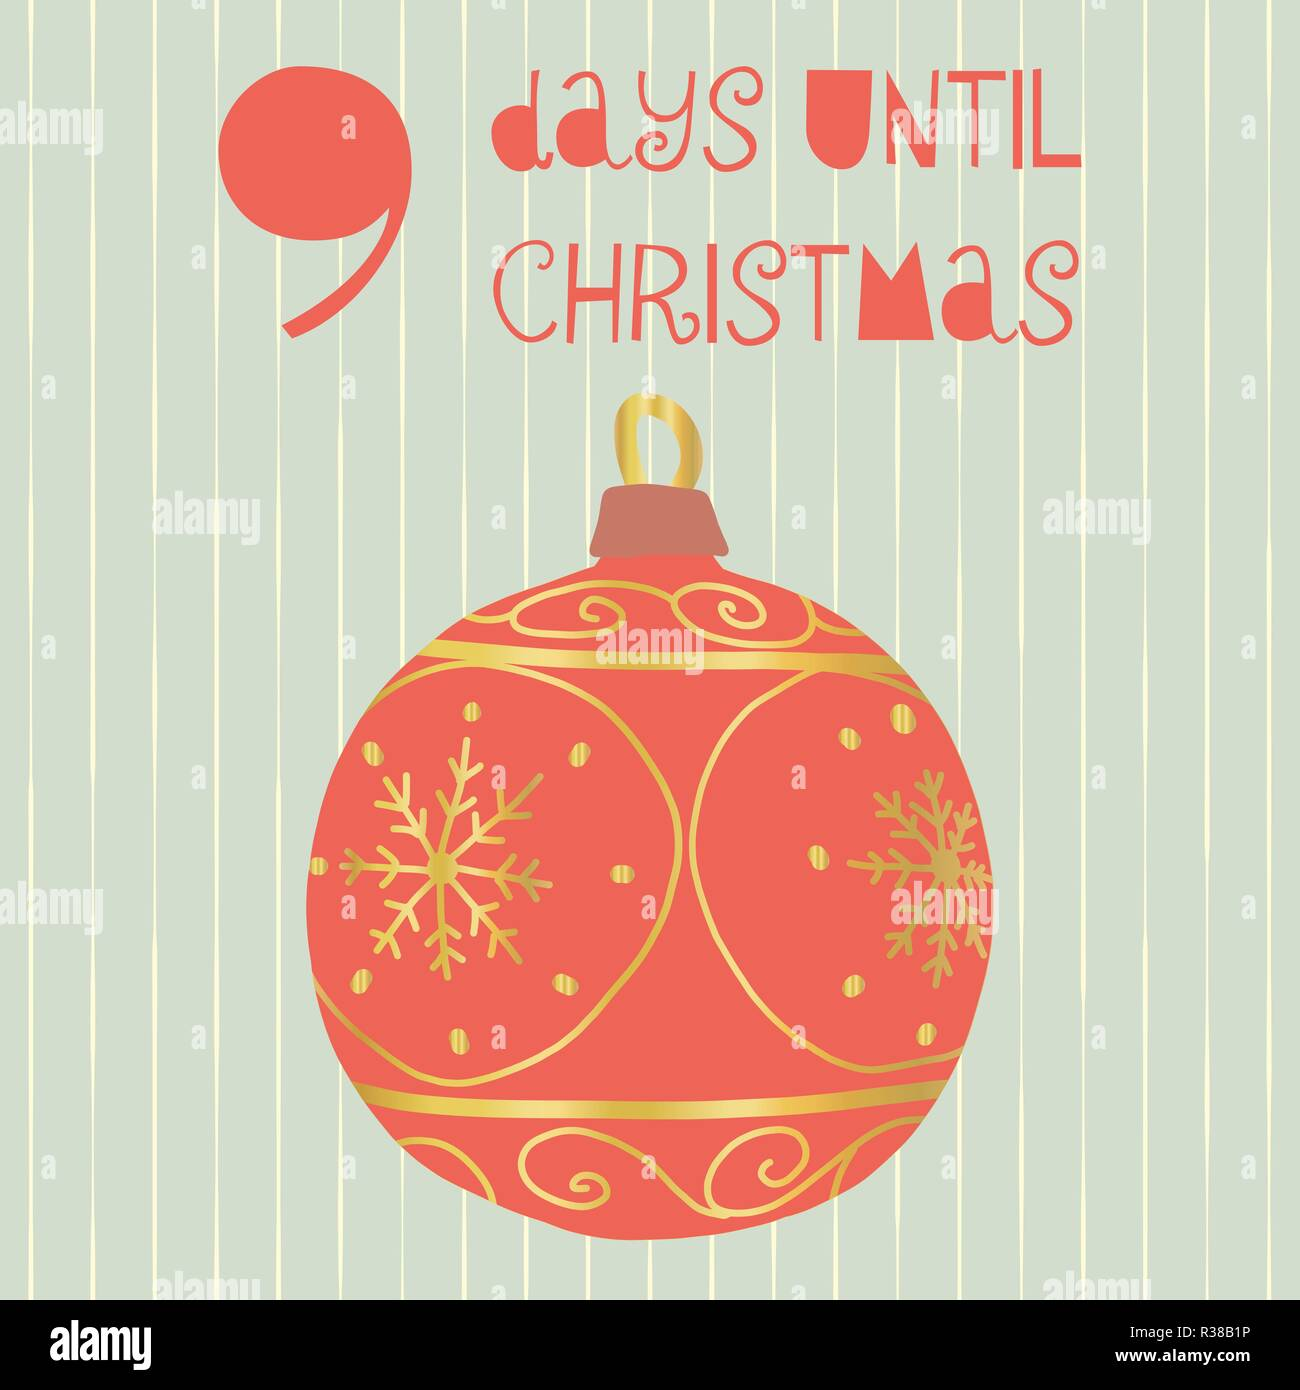 How Many Days Until Christmas Countdown.9 Days Until Christmas Vector Illustration Christmas